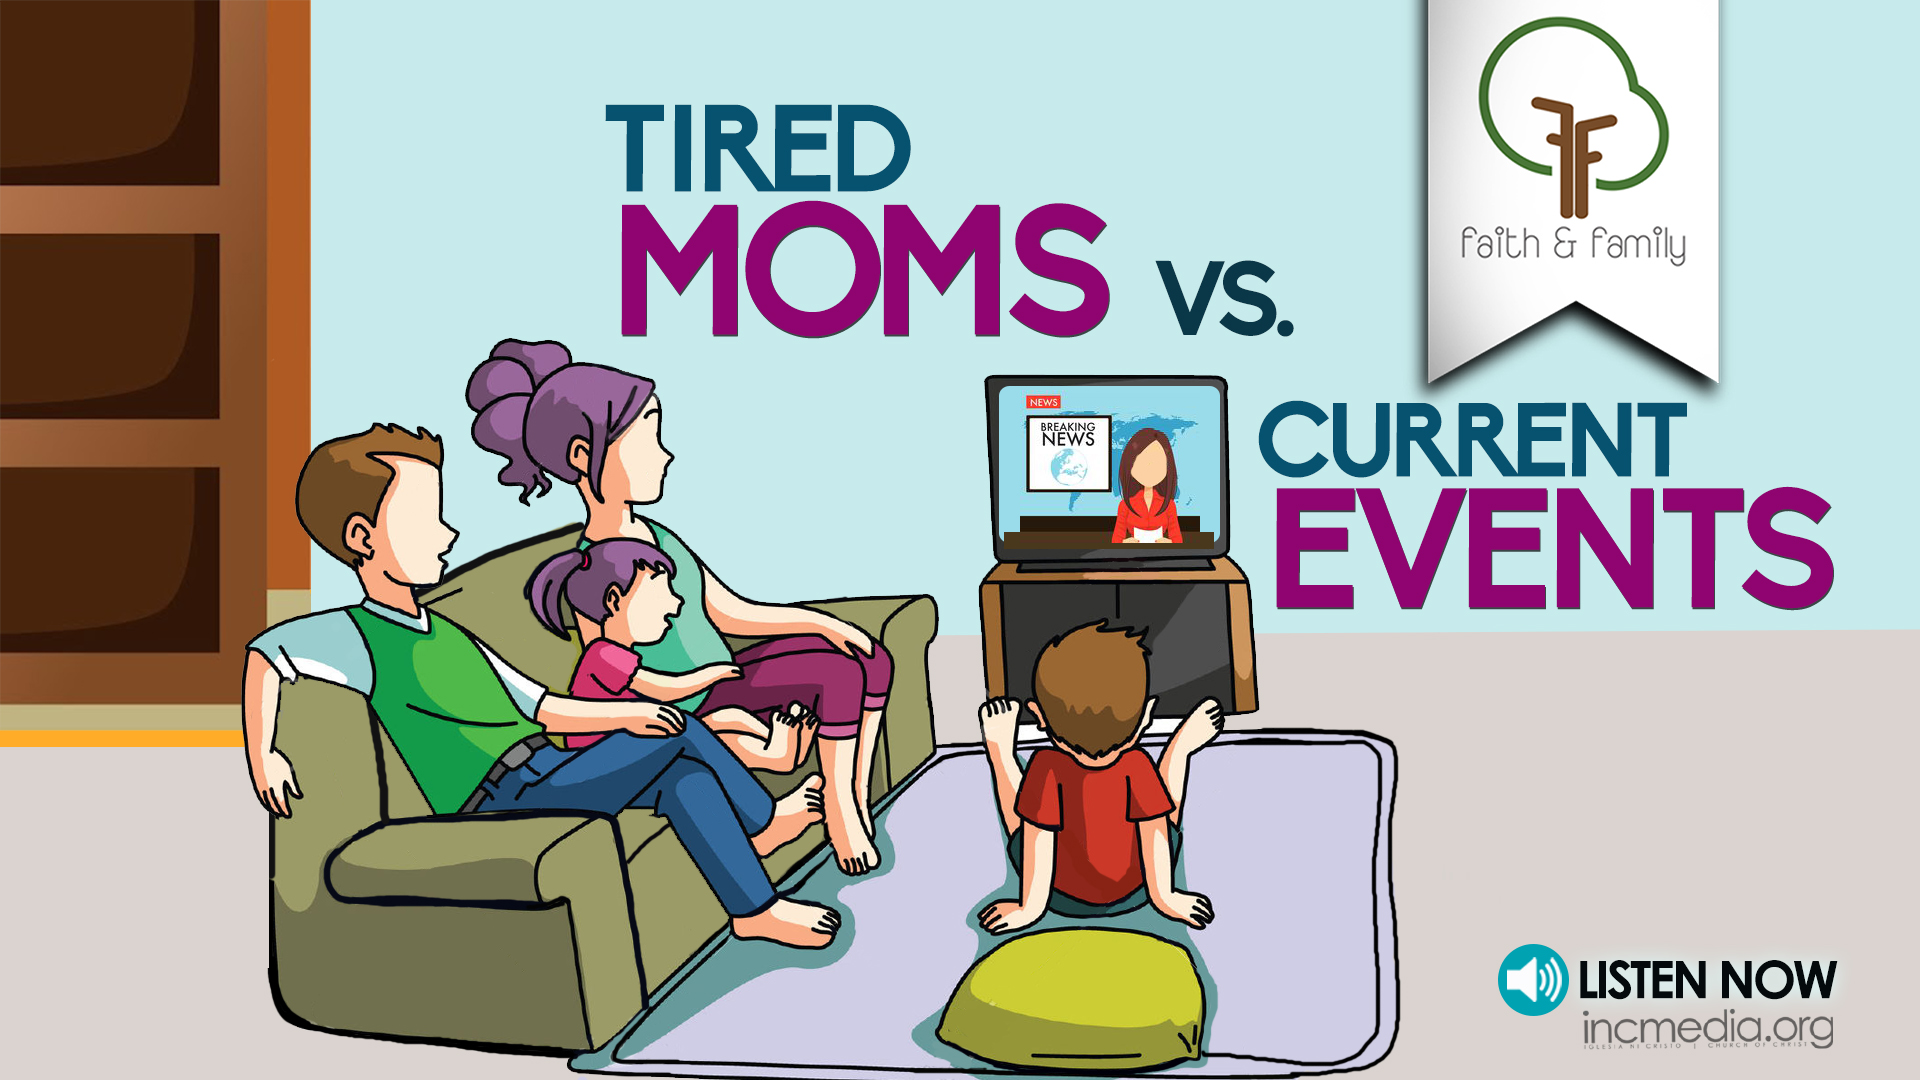 Tired Moms Vs. Current Events